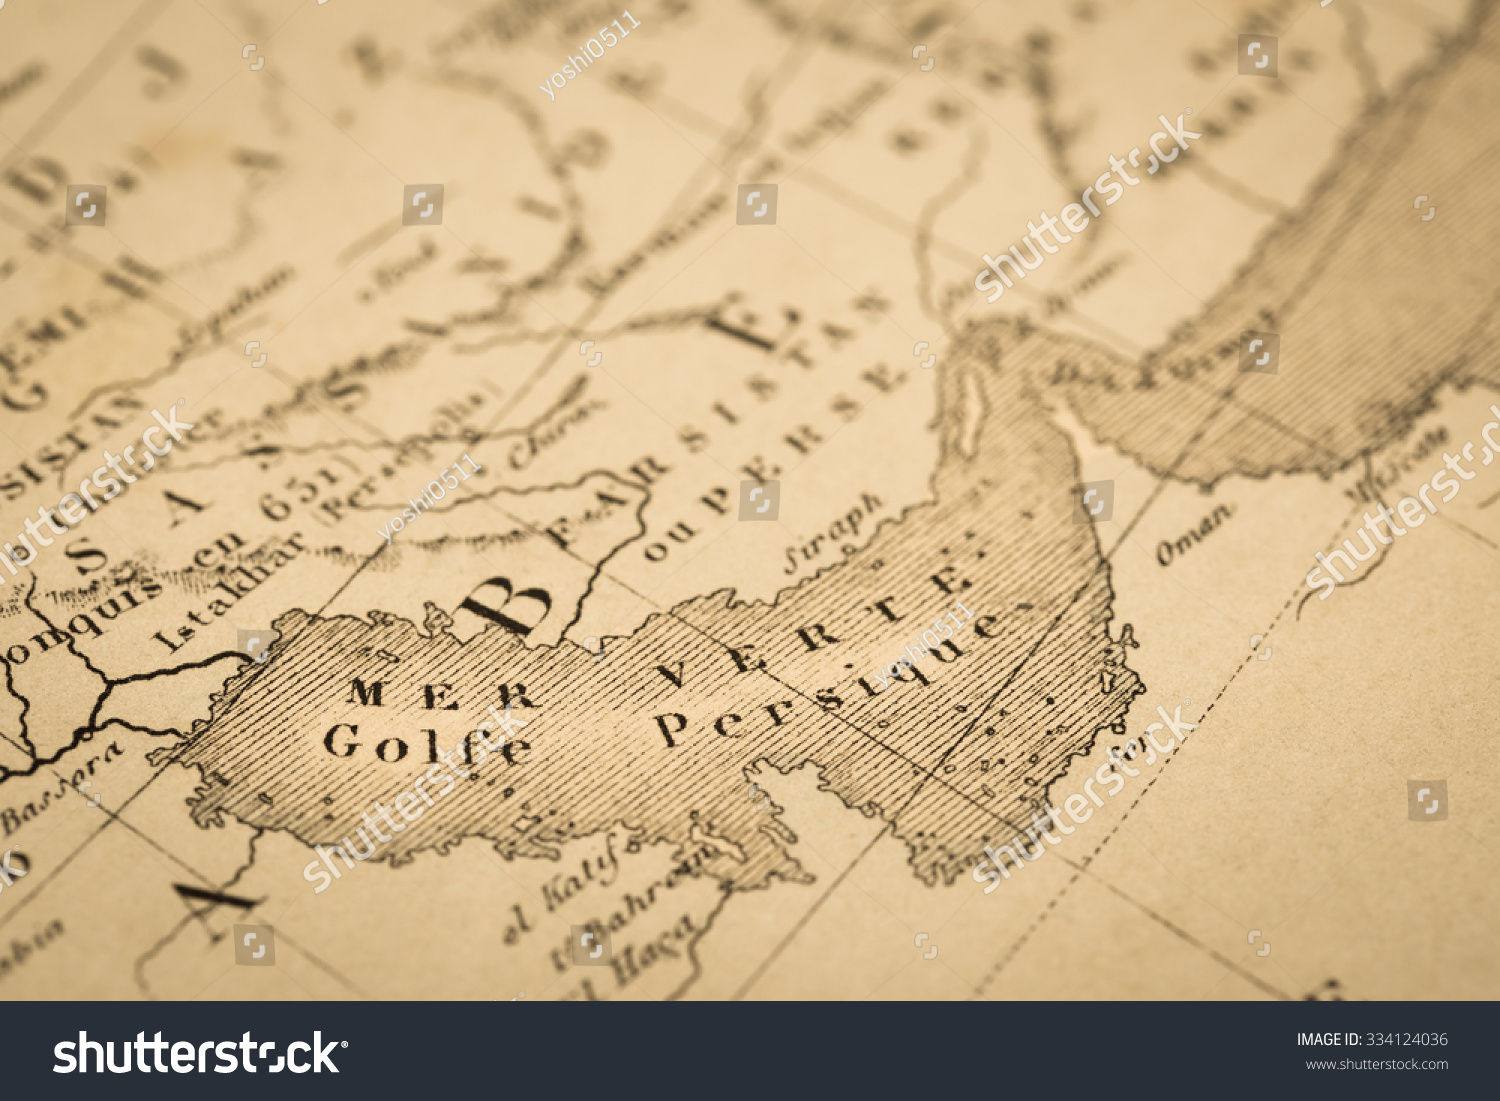 Royalty-free Antique world map, the Persian Gulf #334124036 Stock ...